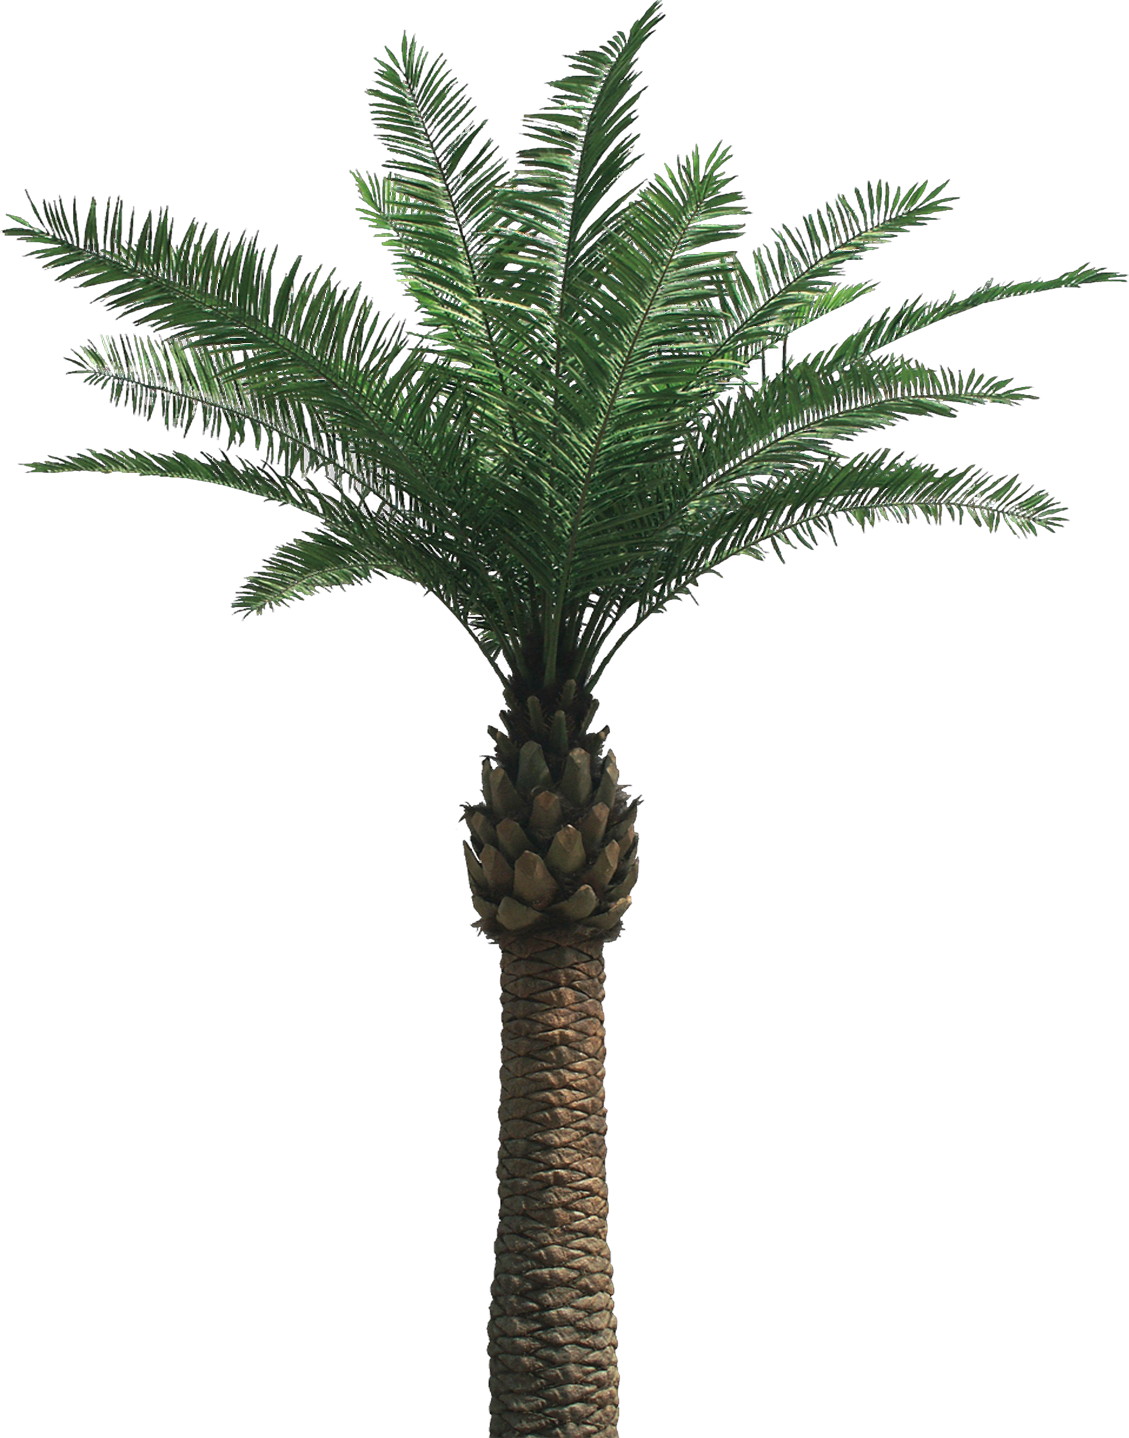 transparent png background palm tree #11030